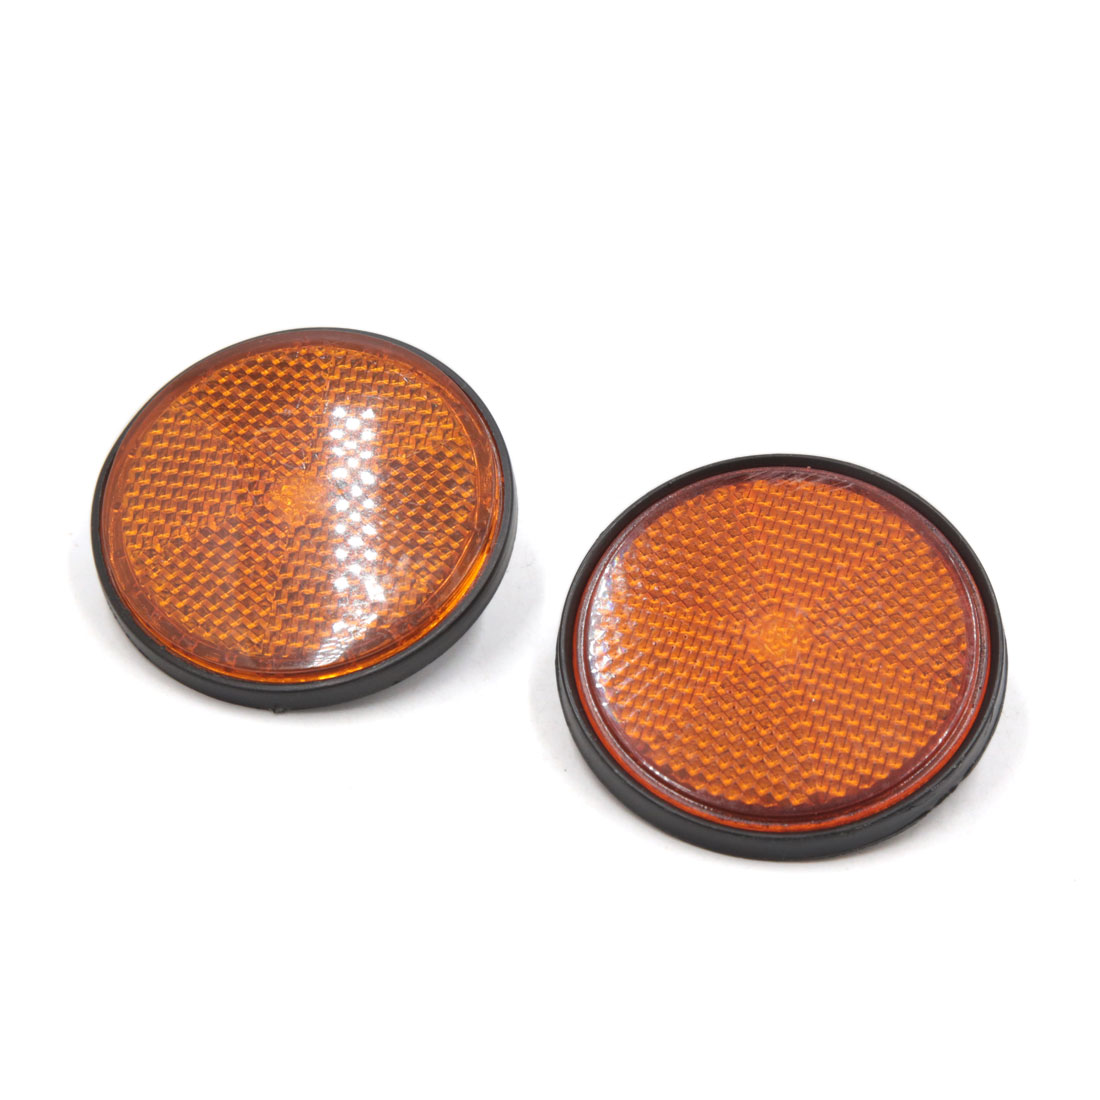 2Pcs 2.2 Inch Dia Motorcycle Scooter Round Reflective Reflectors Orange Black